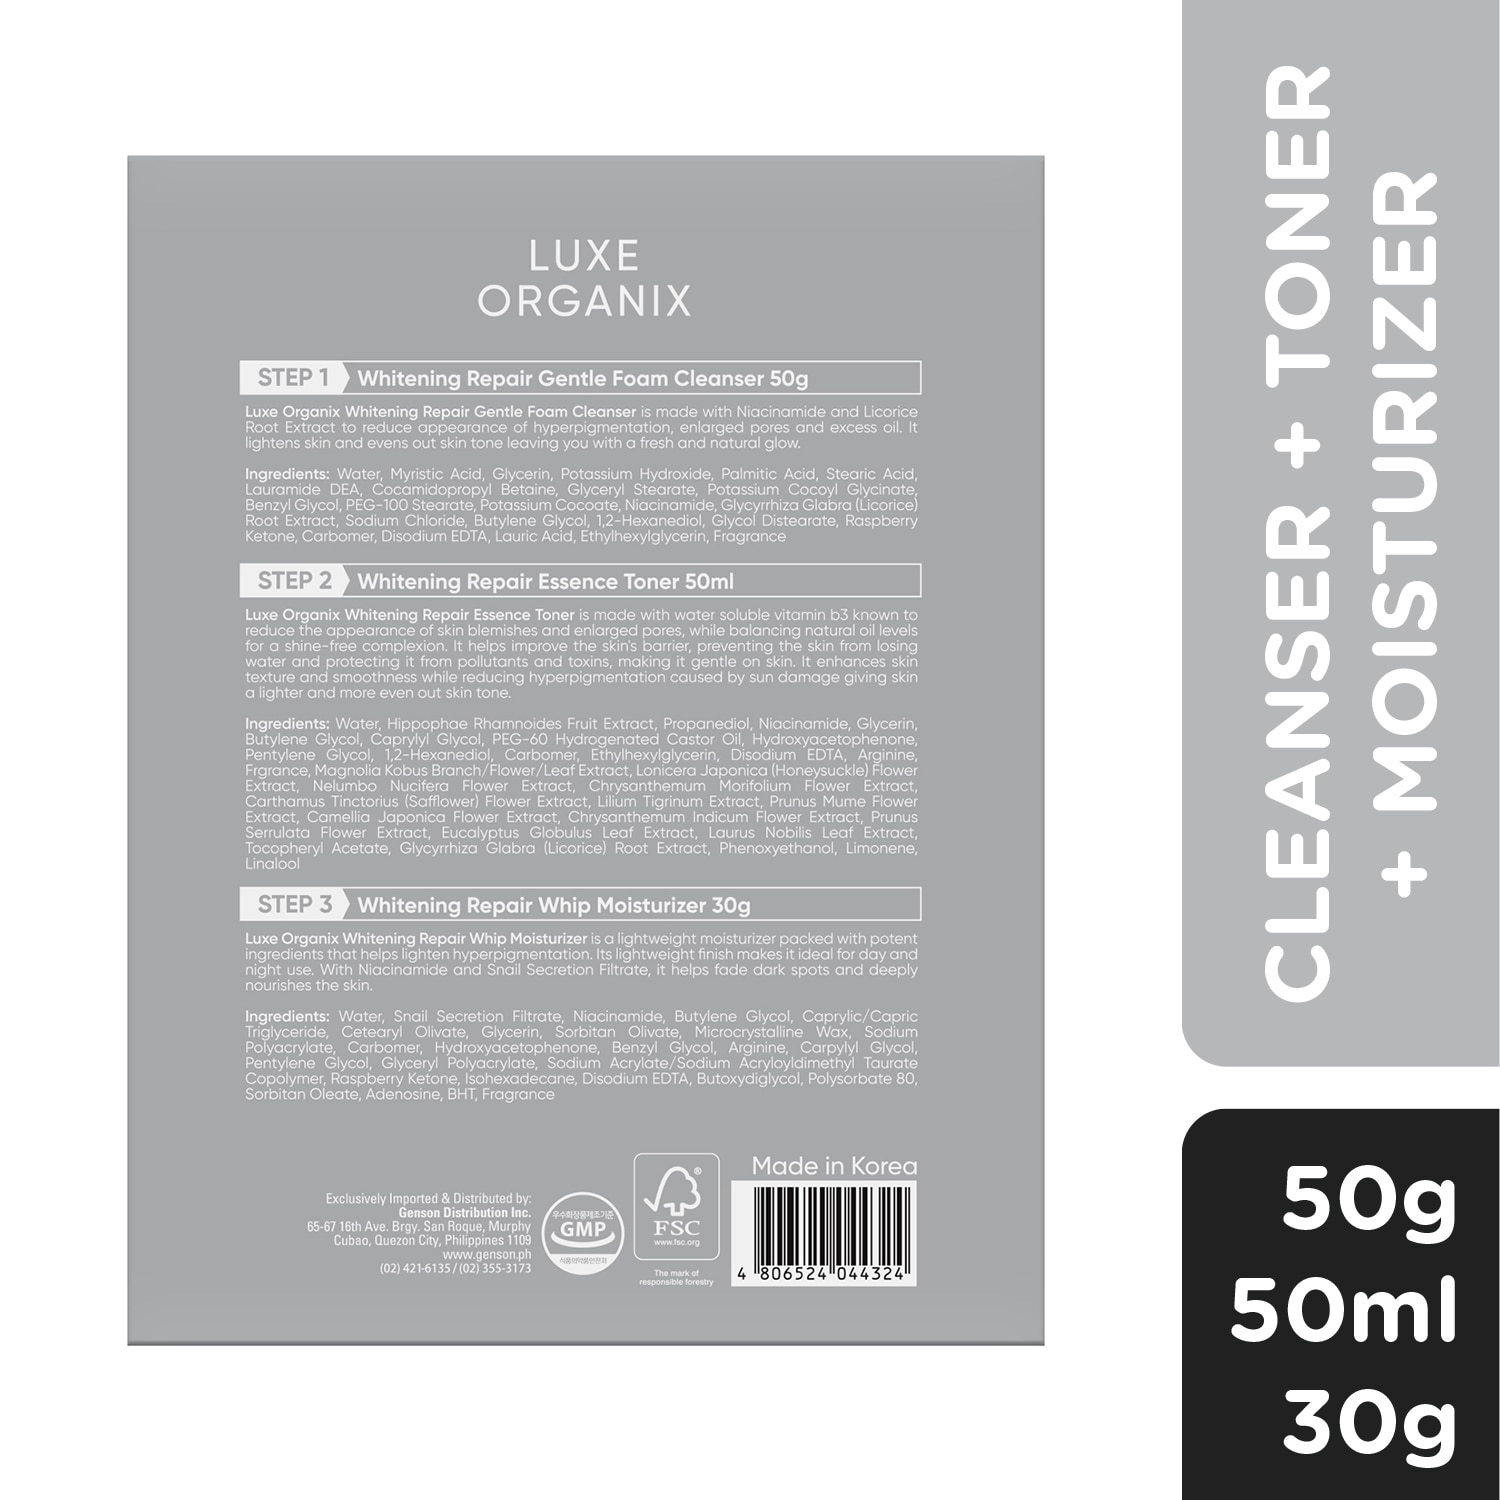 LUXE ORGANIXWhitening Repair Starter Kit Inclusions: Cleanser 50ml,For Women